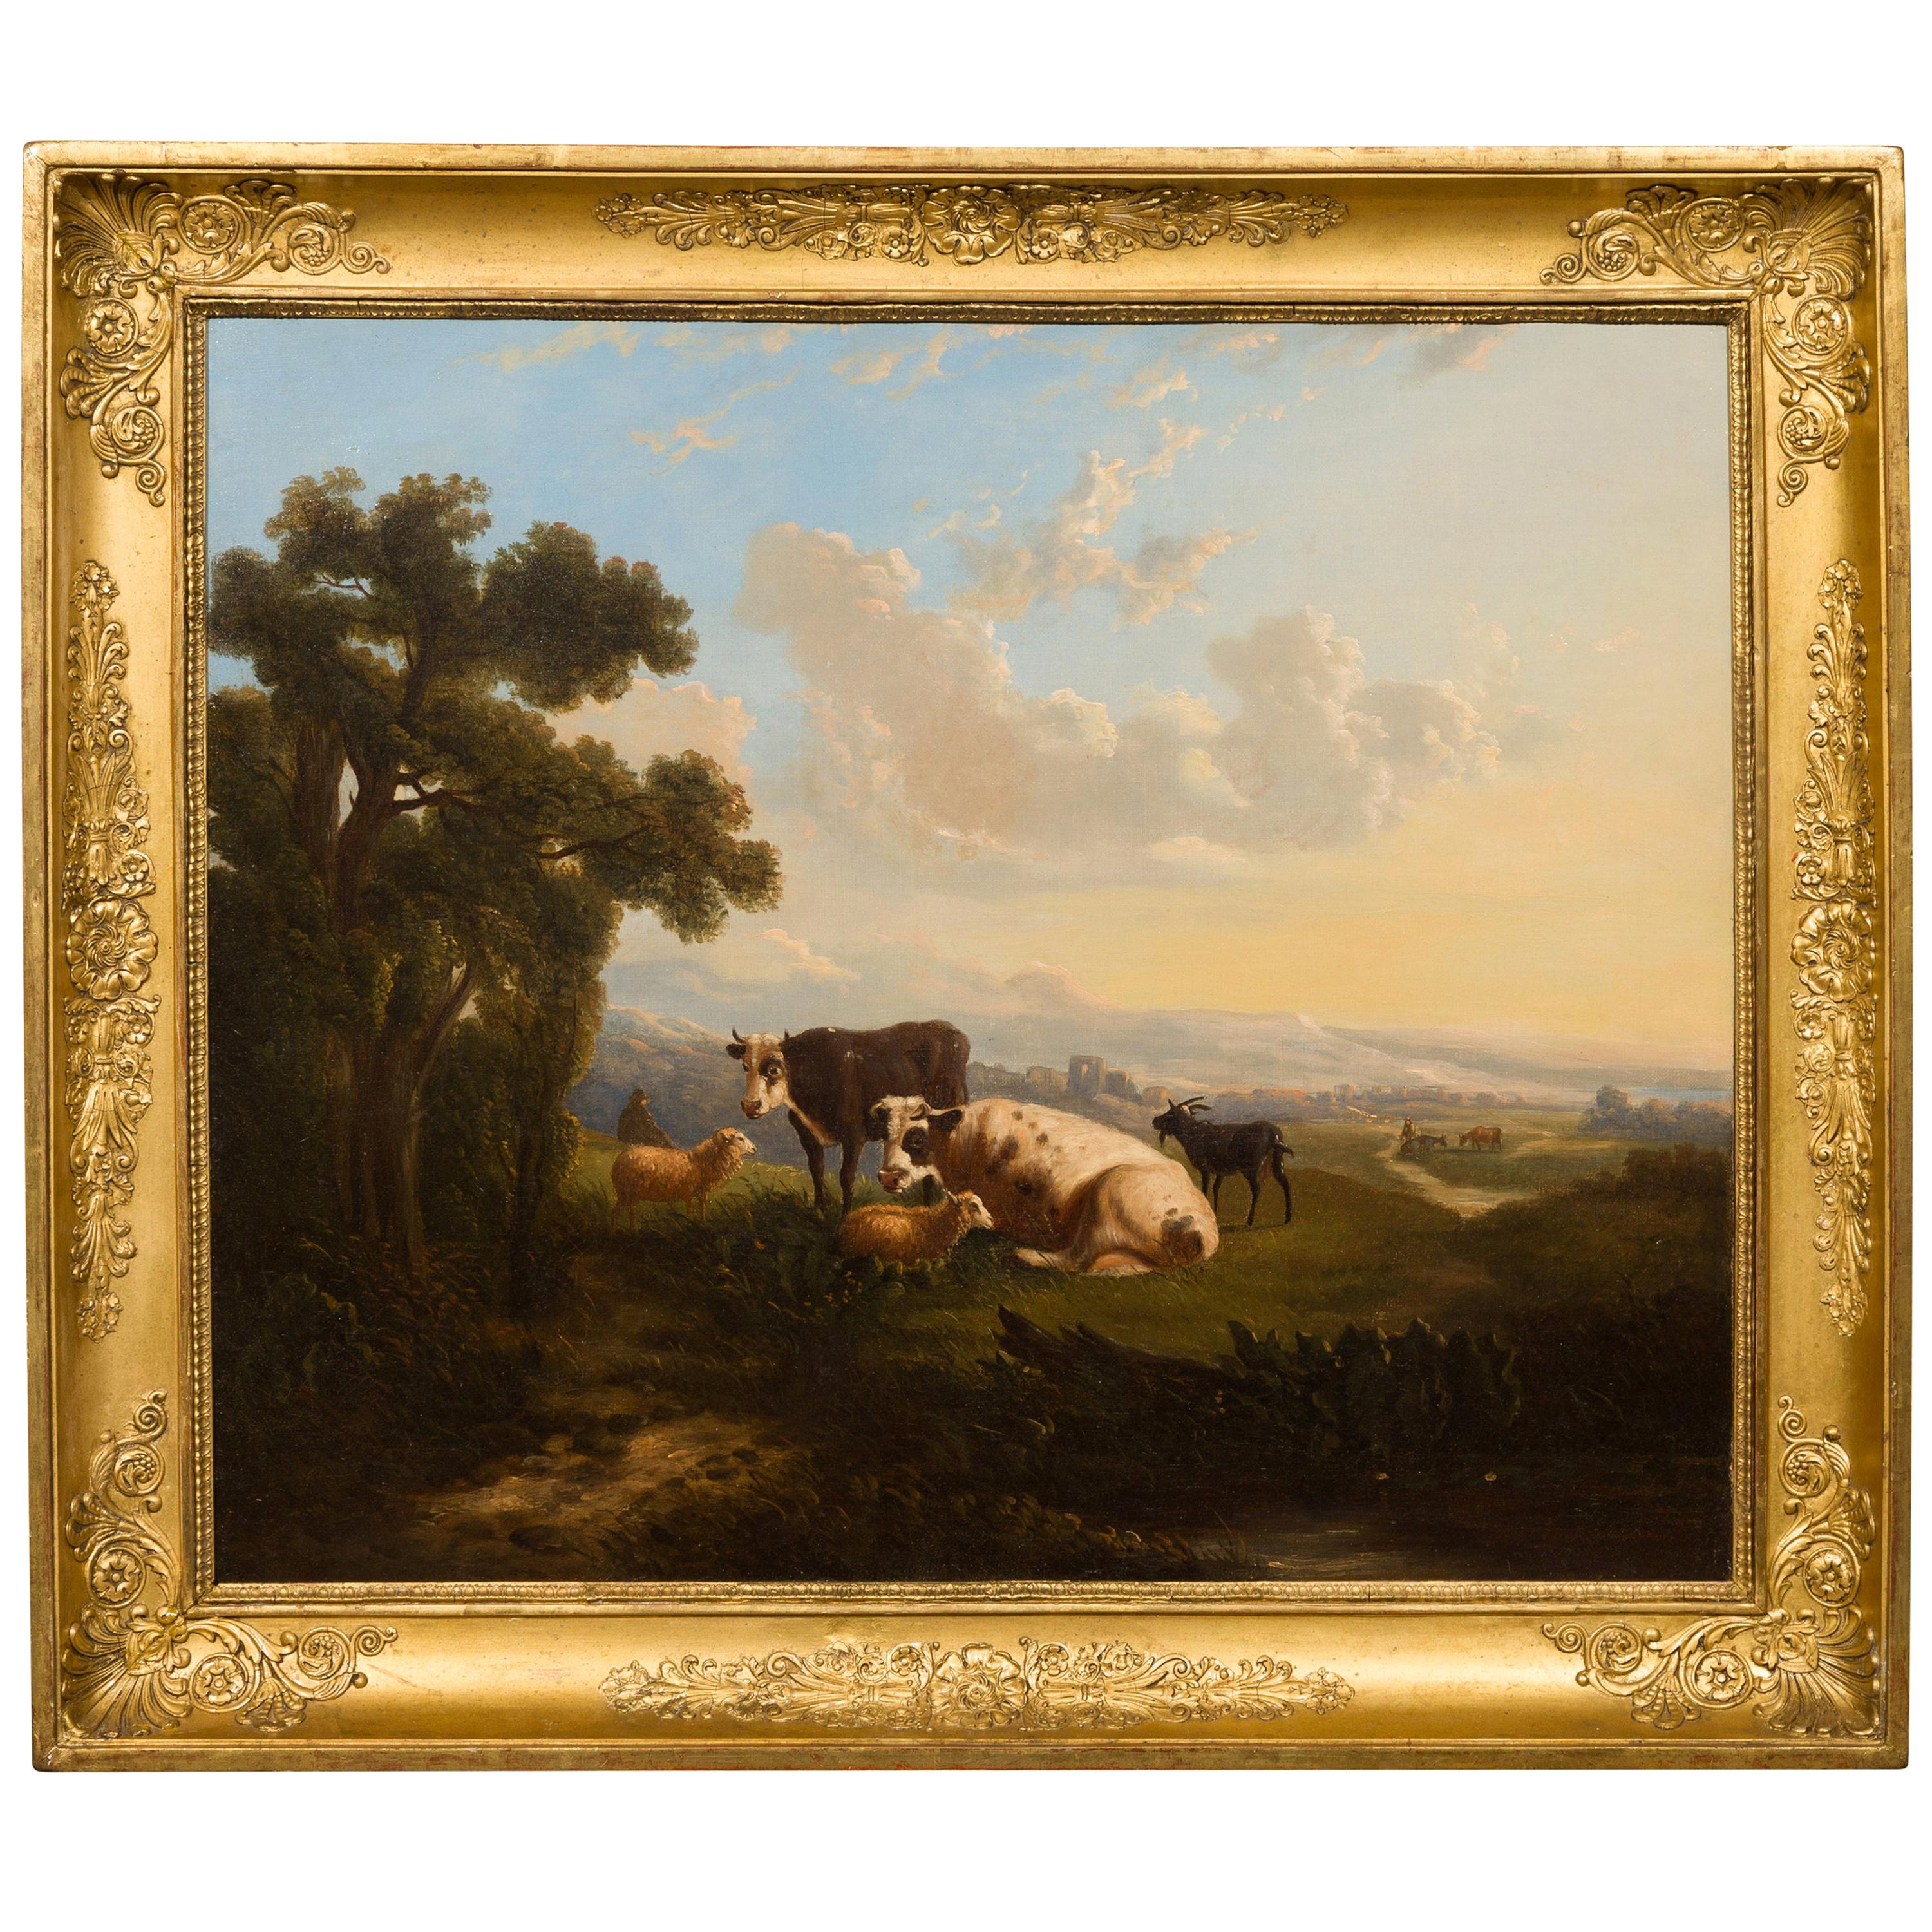 Italian 19th Century Framed Oil on Canvas Painting Depicting Cows in Pastures